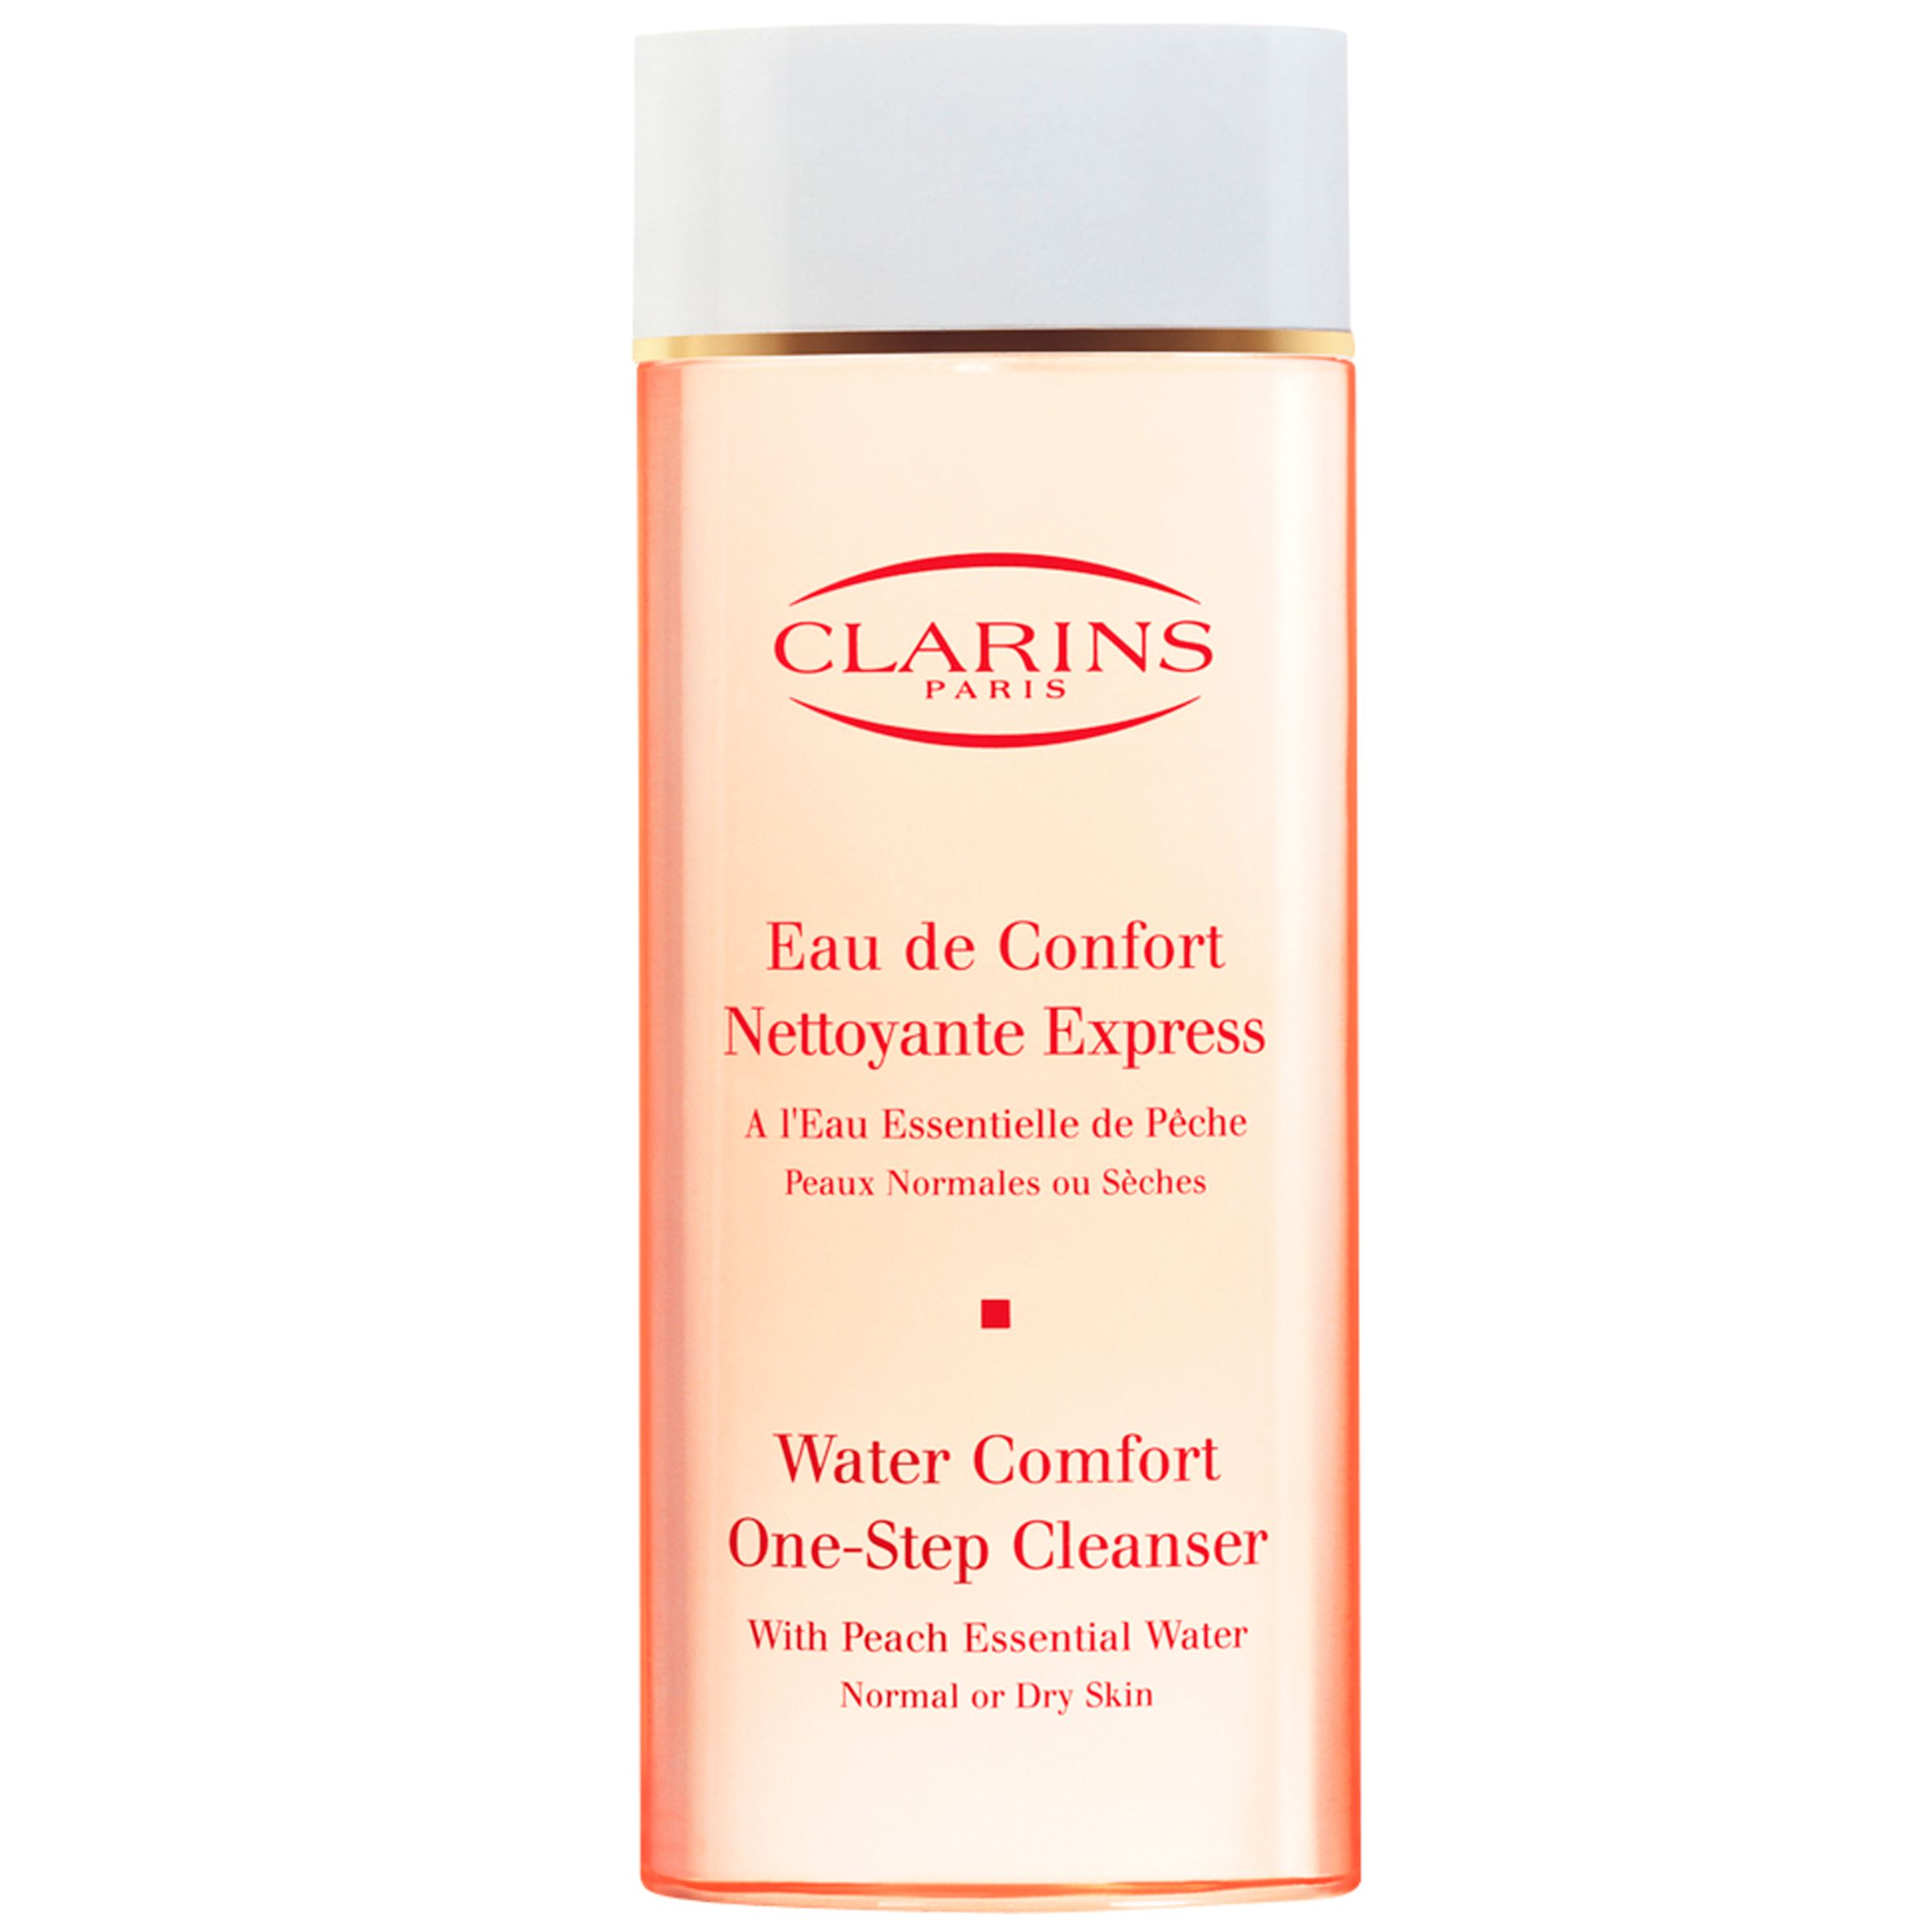 Water Comfort One-Step Cleanser with Peach Essential Water by Clarins #18